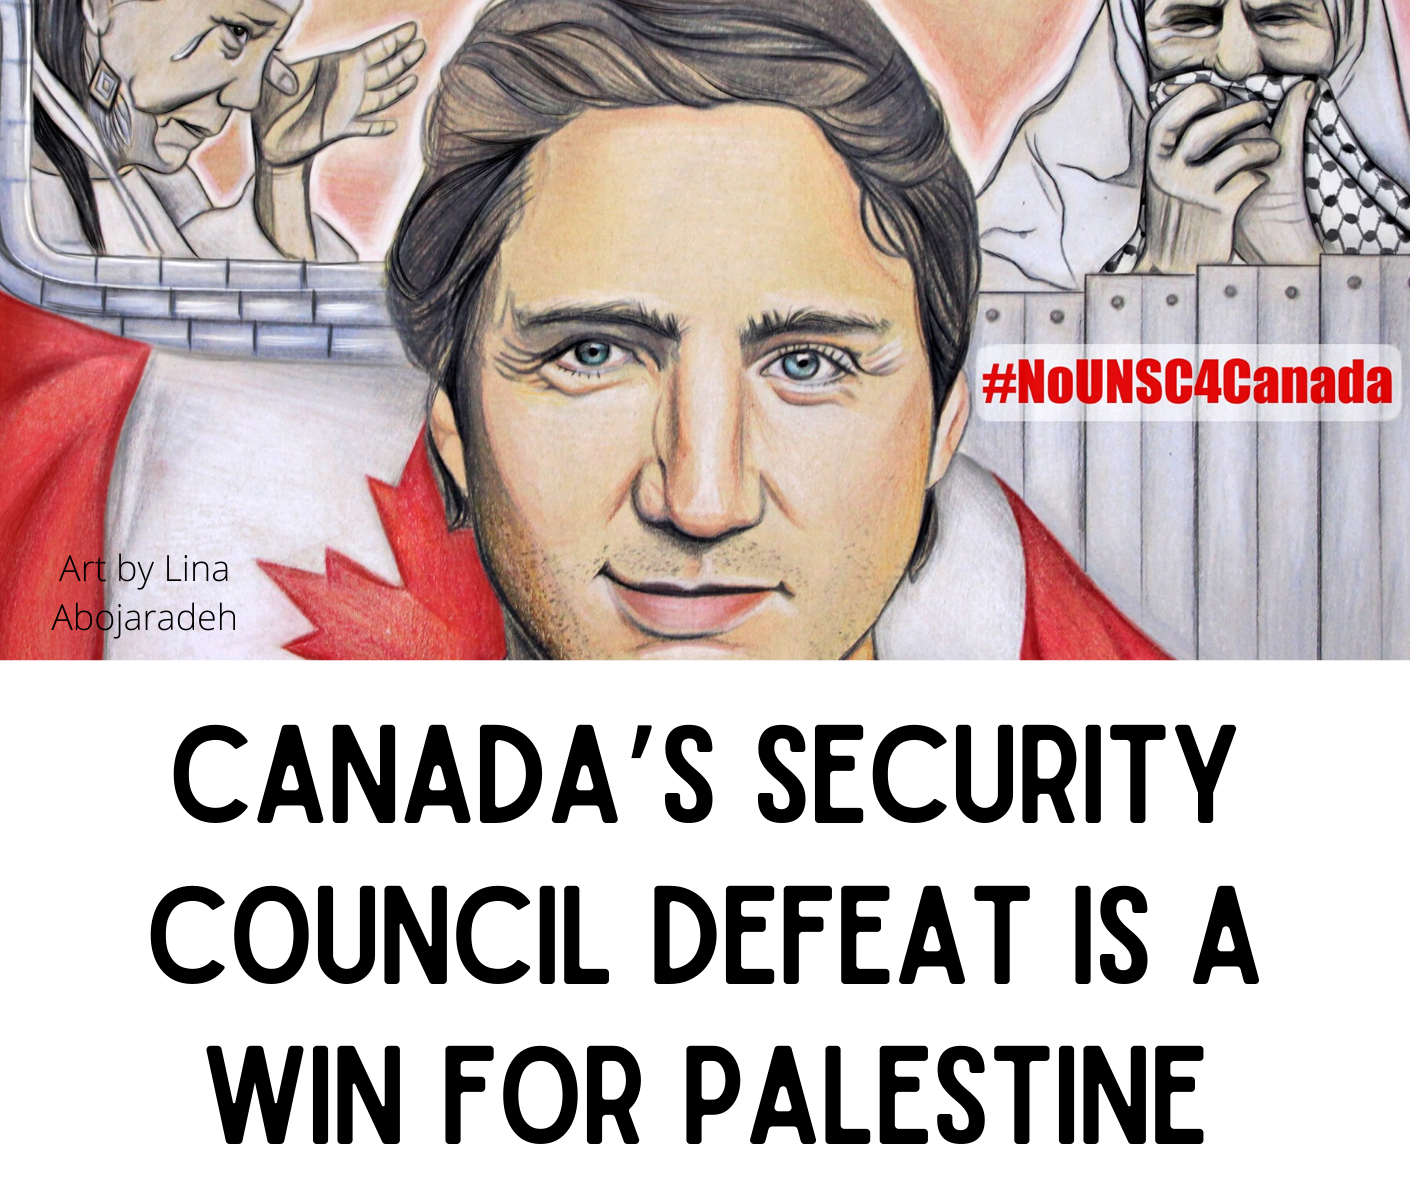 Since_2000_canada_has_voted_against_166_un_resolutions_supporting_palestinian_rights